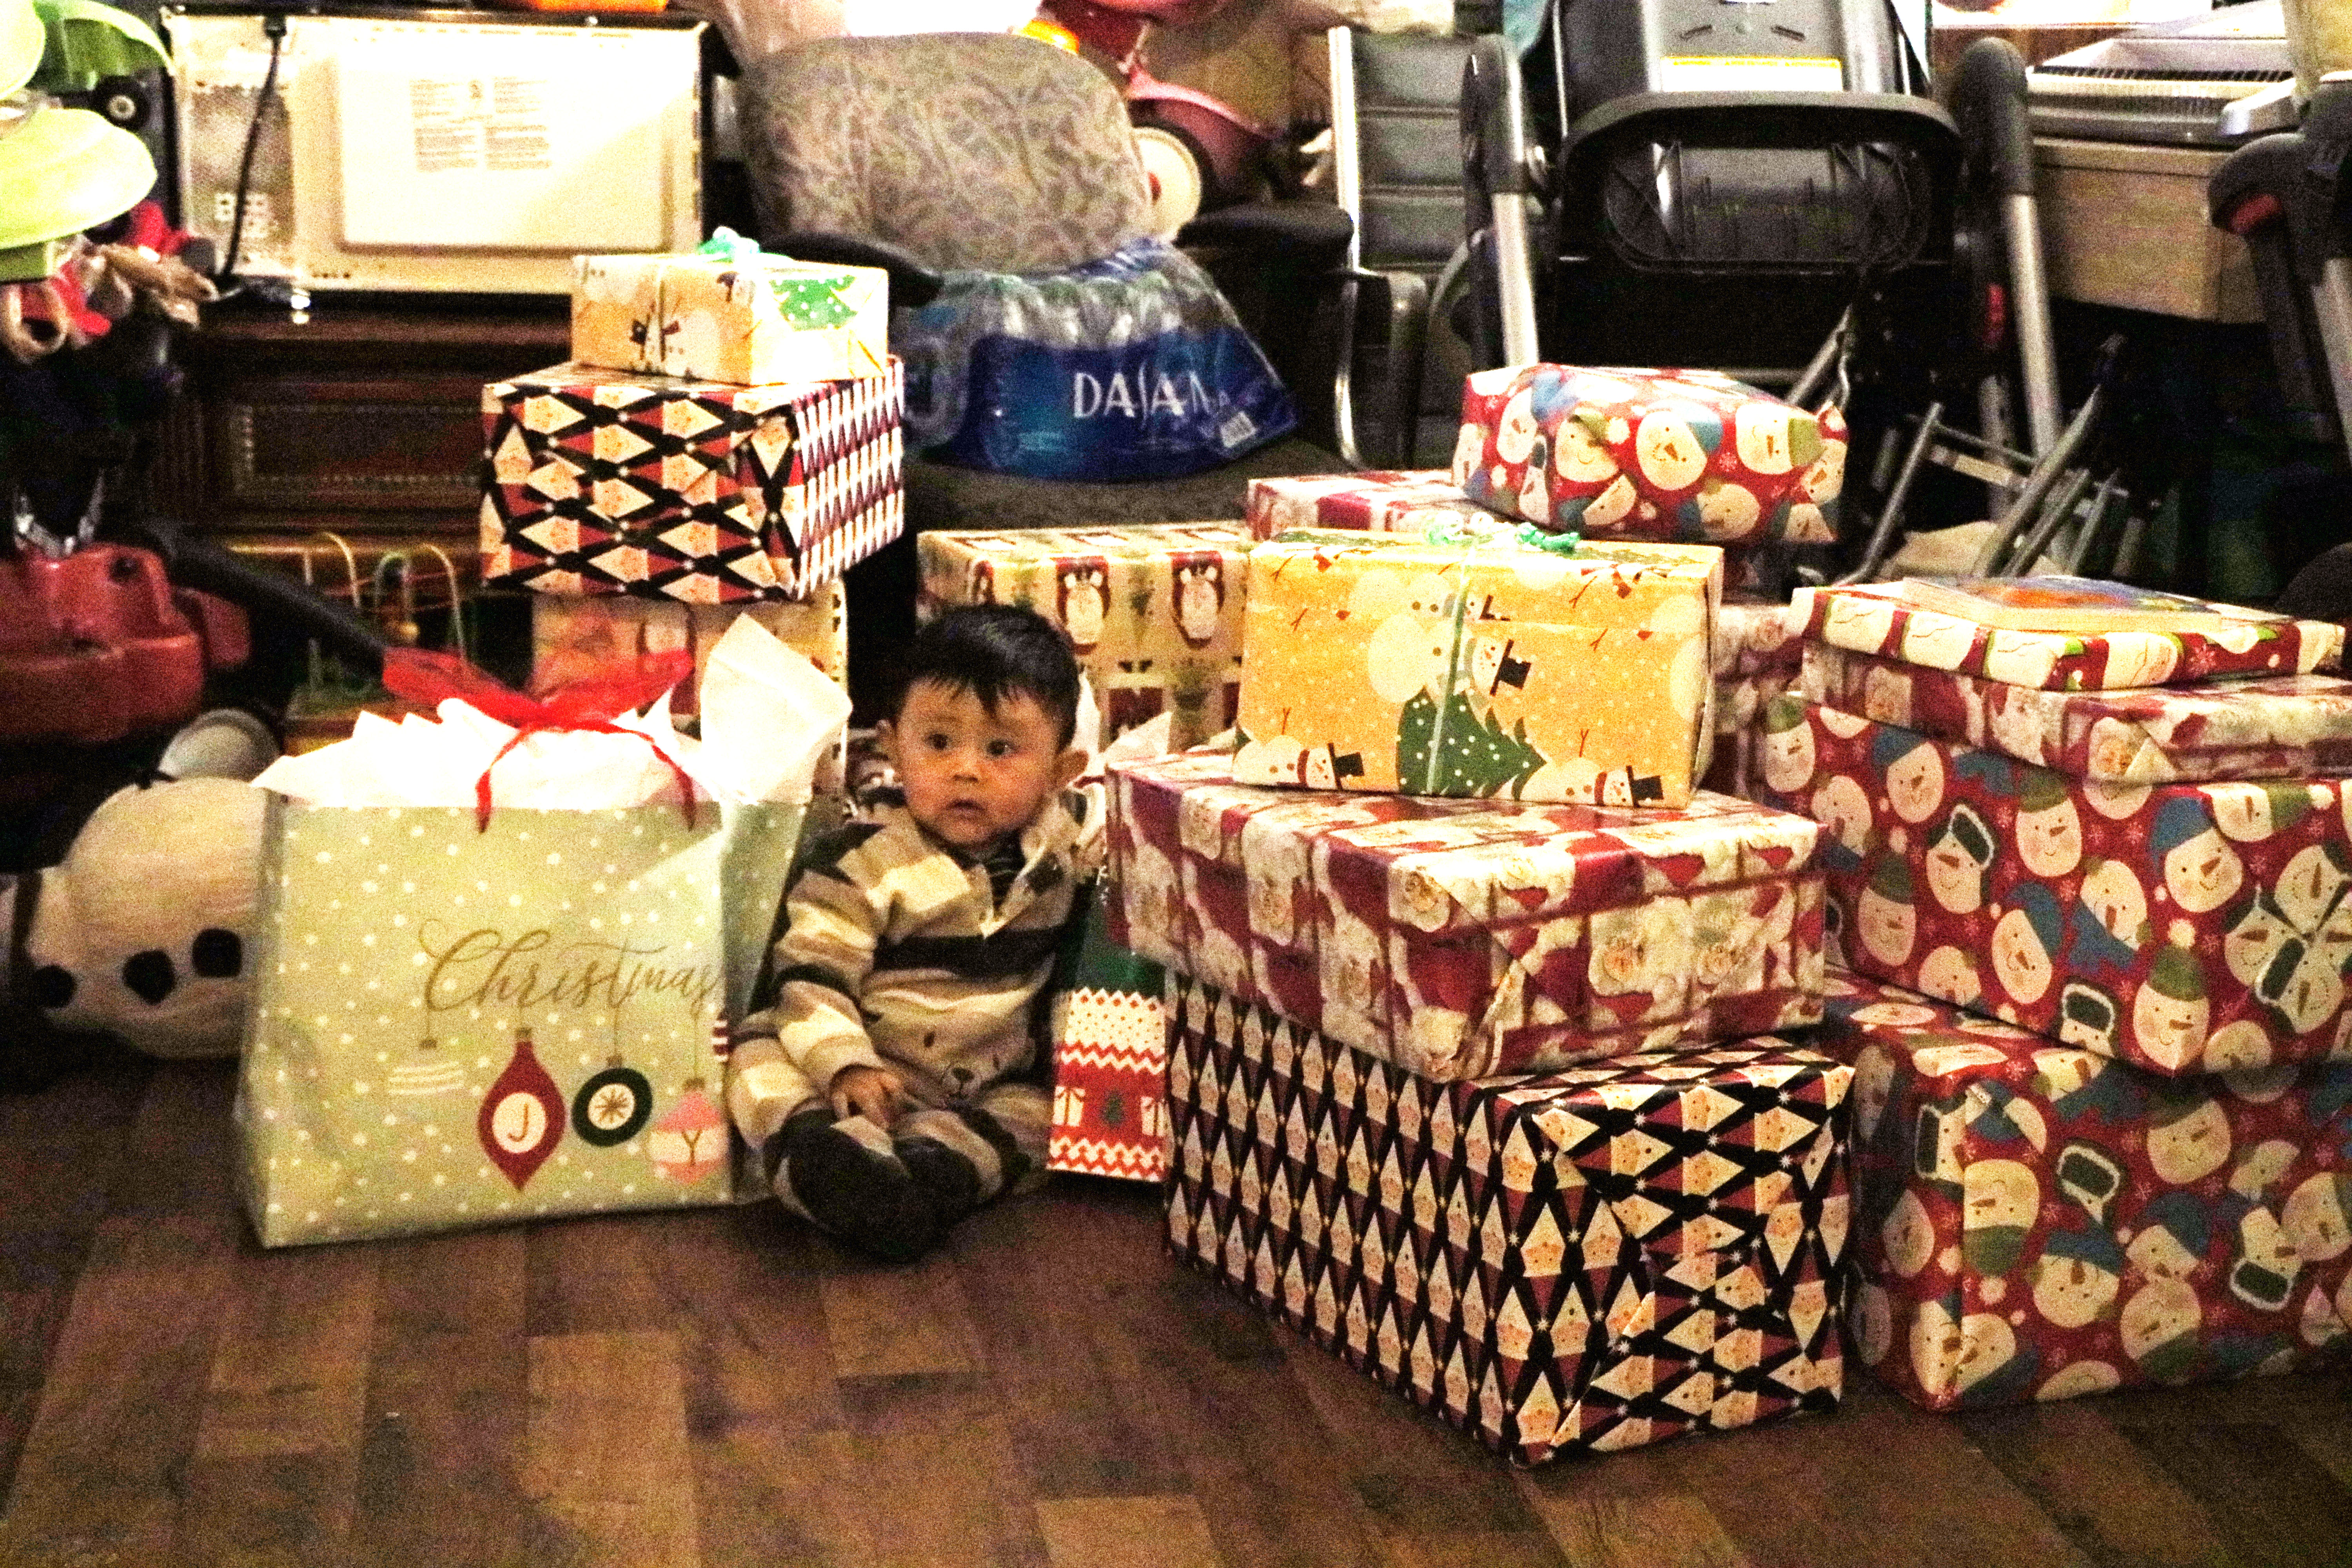 Toddler sits on floor among a stack of holiday presents